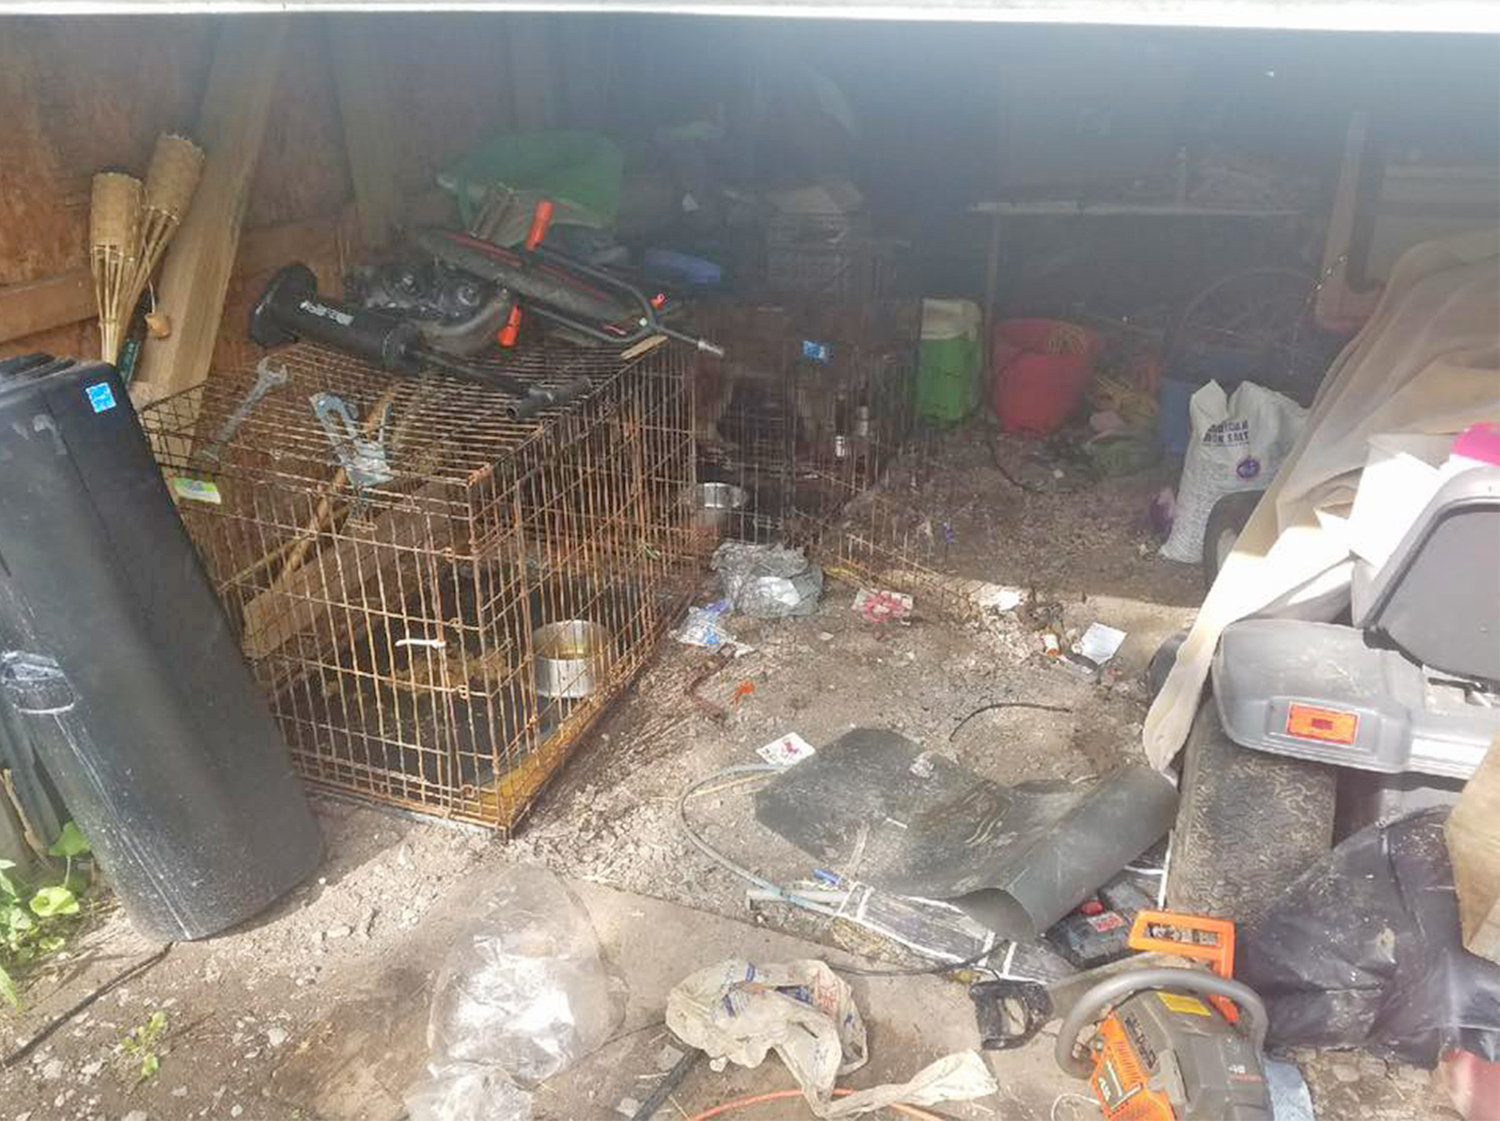 'DEPLORABLE CONDITIONS' — These are the living conditions of three dogs at the rural Cobb Street home under investigation by Oneida Police. Authorities said three dogs at the home were well fed and had water, but they were seized by law enforcement because of the living conditions.